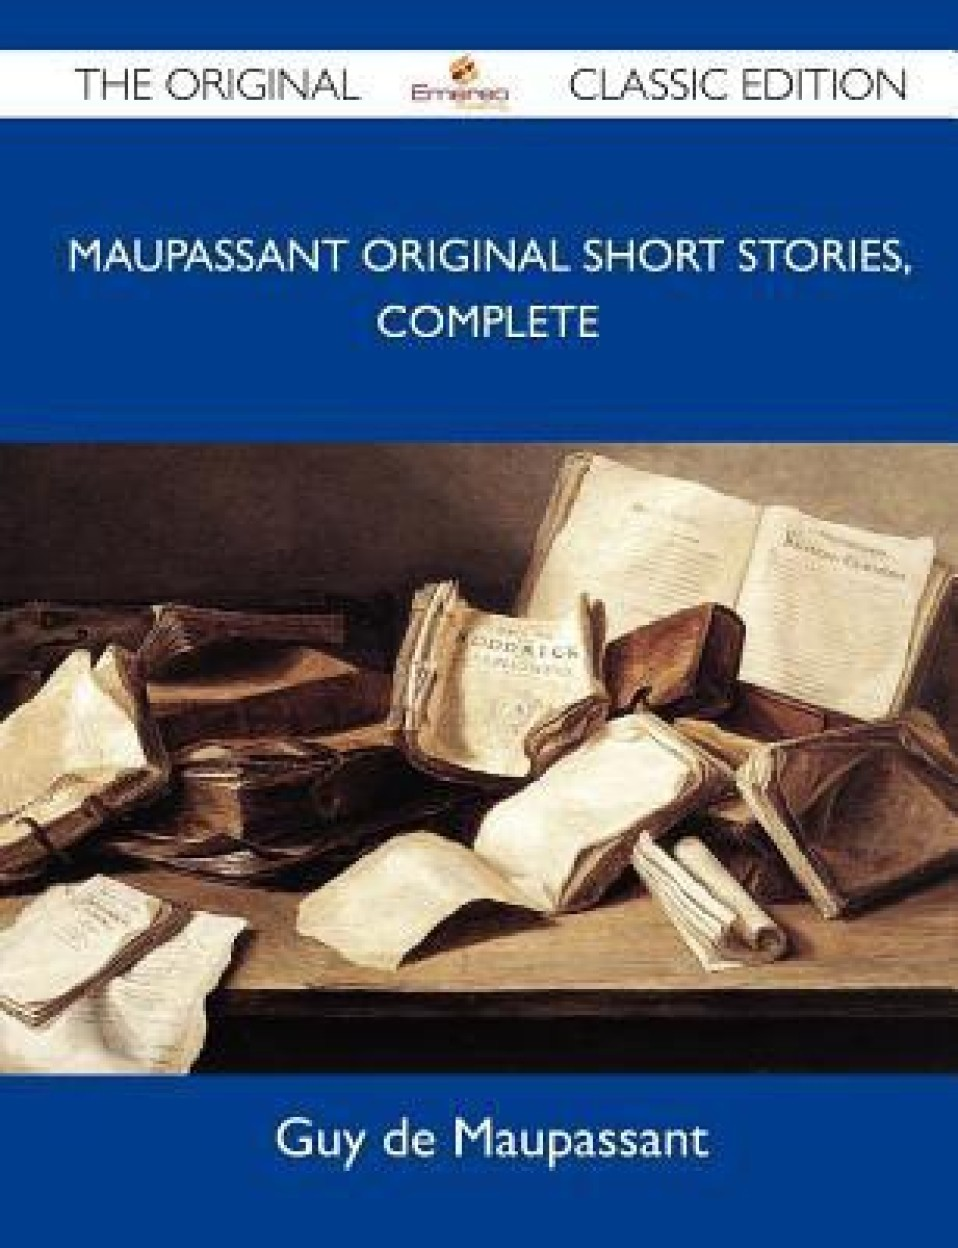 Maupassant Original Short Stories, by Guy de Maupassant